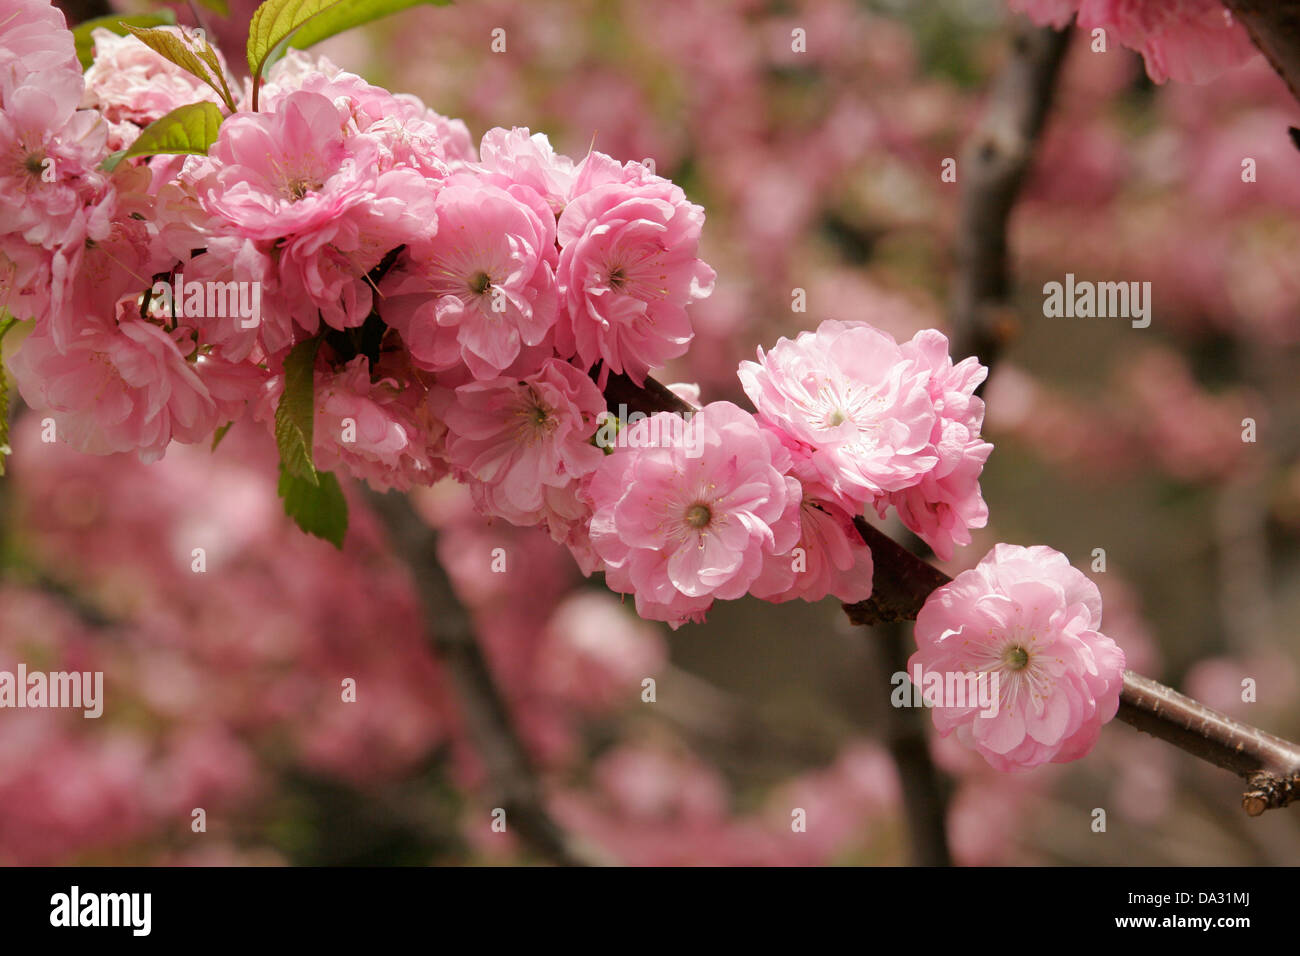 Pink Flowers On The Fruit Tree In Blossom Beijing China Stock